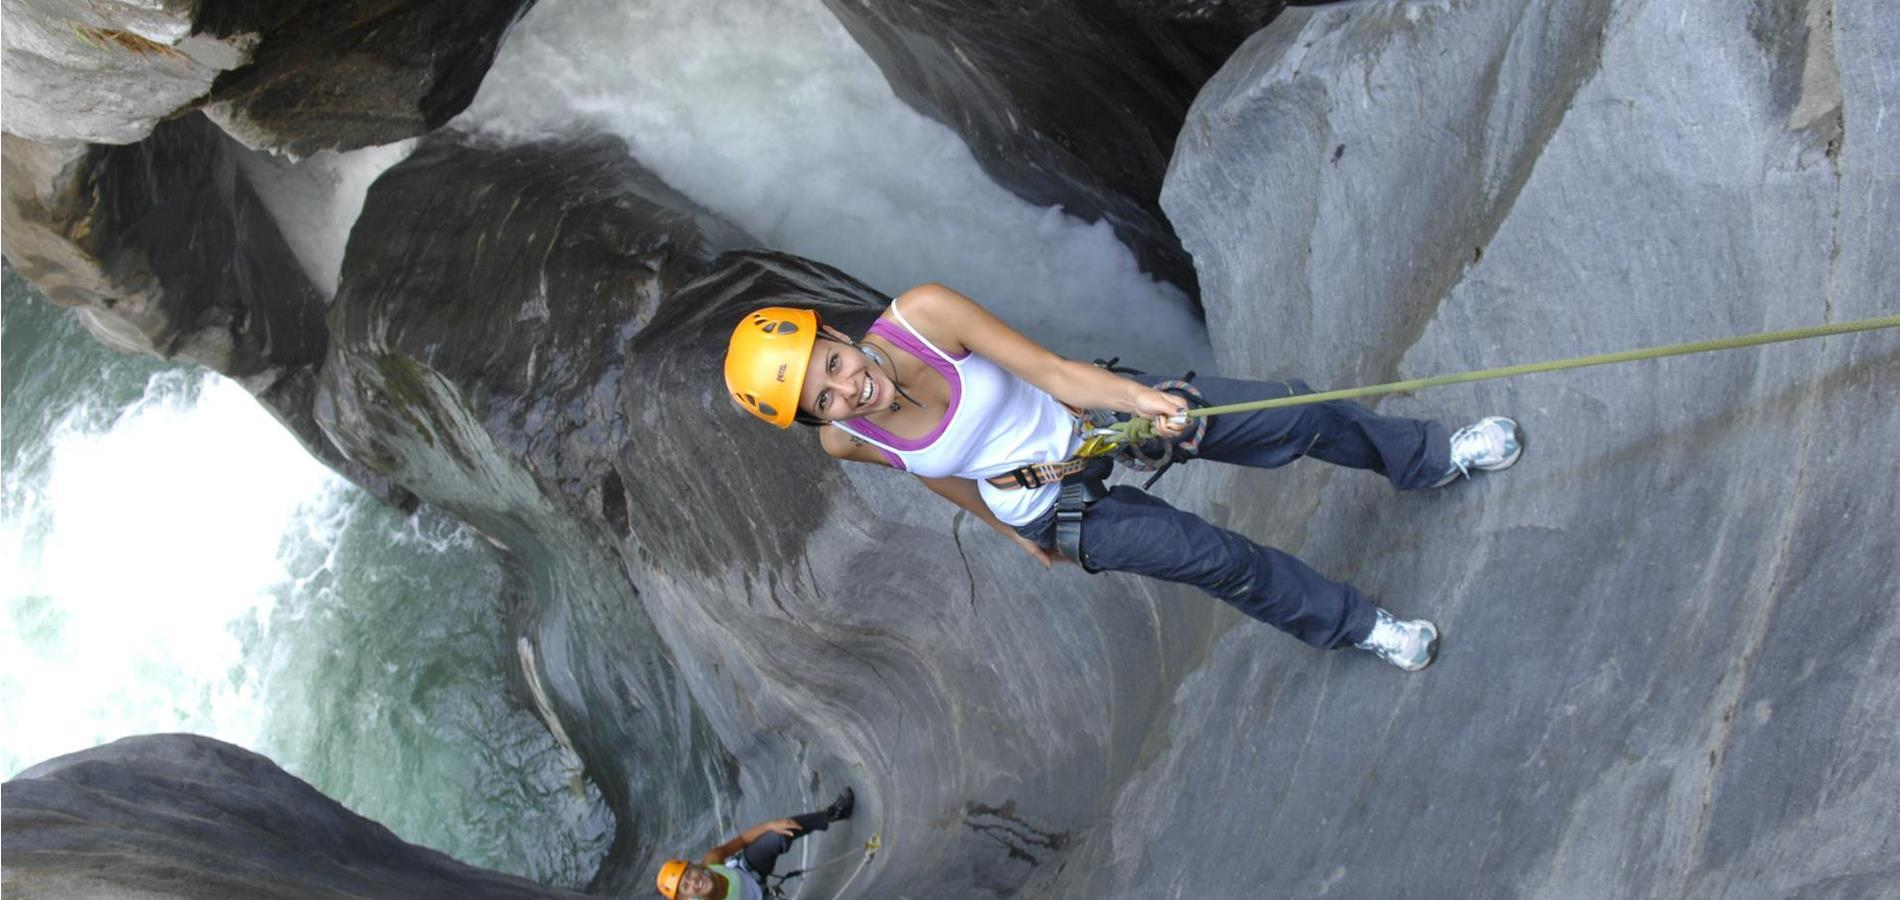 Canyoning & Tarzaning in the Passeiertal Valley